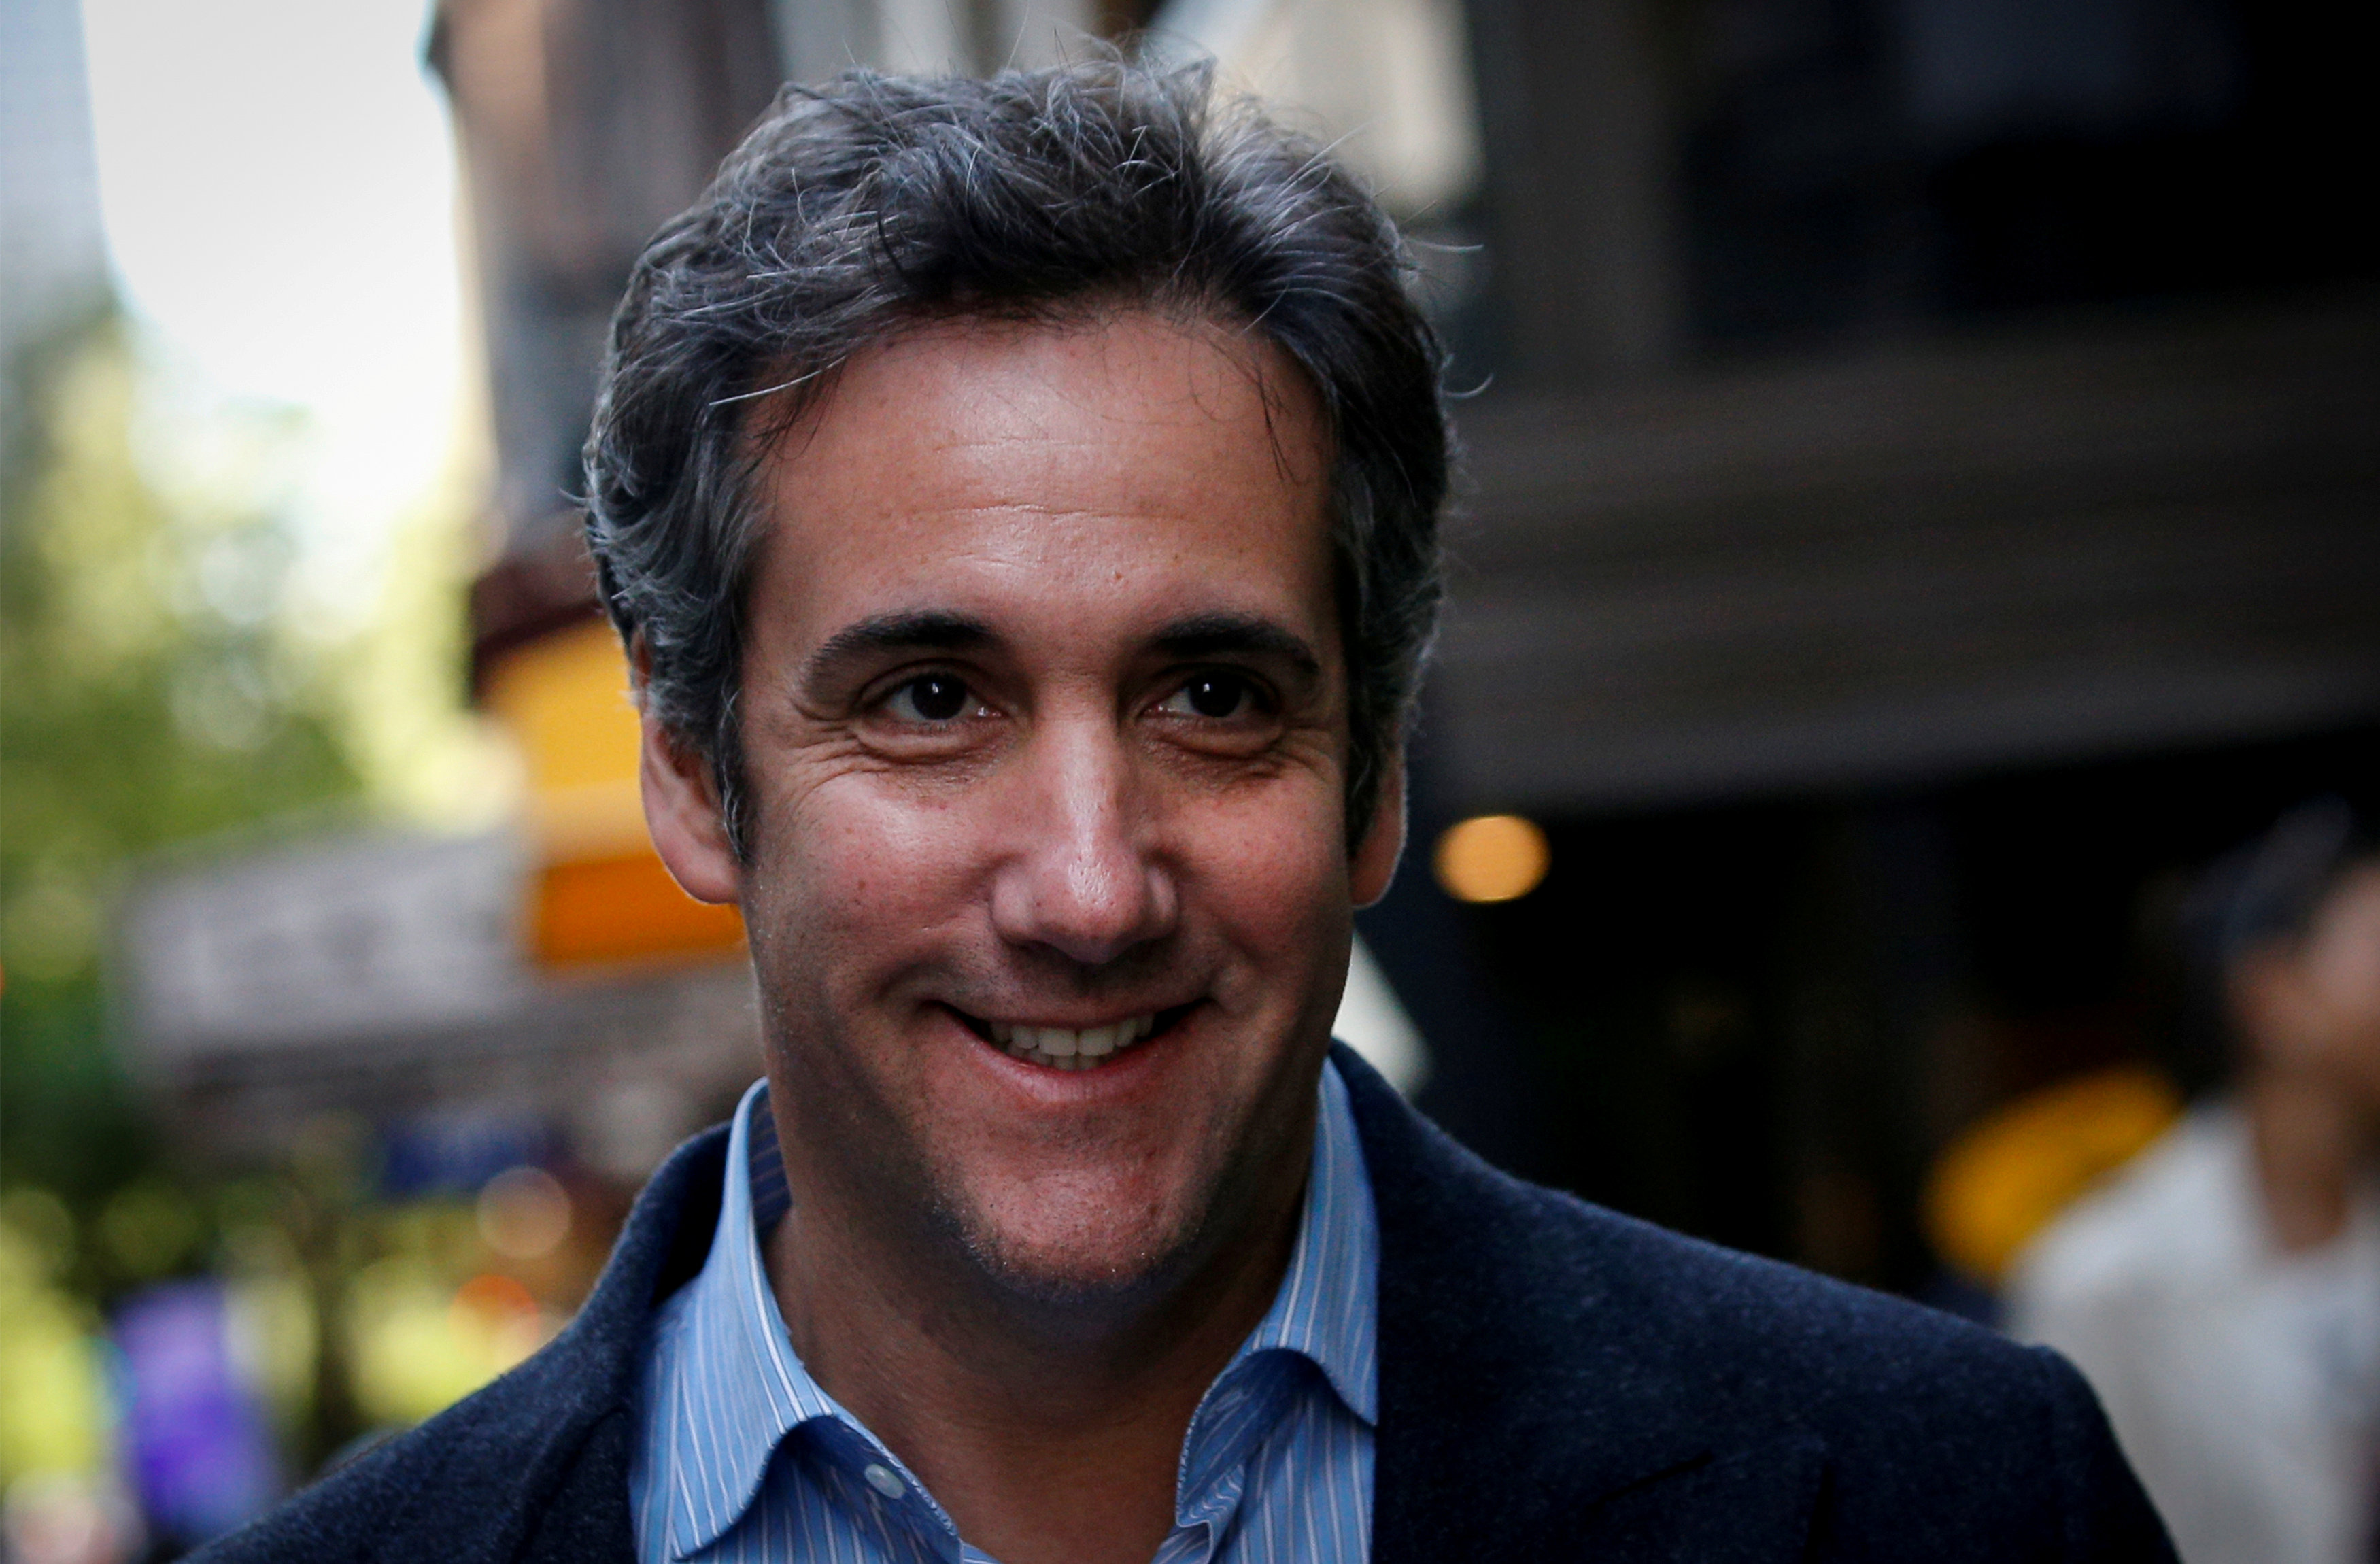 FILE PHOTO: U.S. President Donald Trump's personal lawyer Michael Cohen arrives at his hotel in New York City, U.S., May 11, 2018. Photo: REUTERS